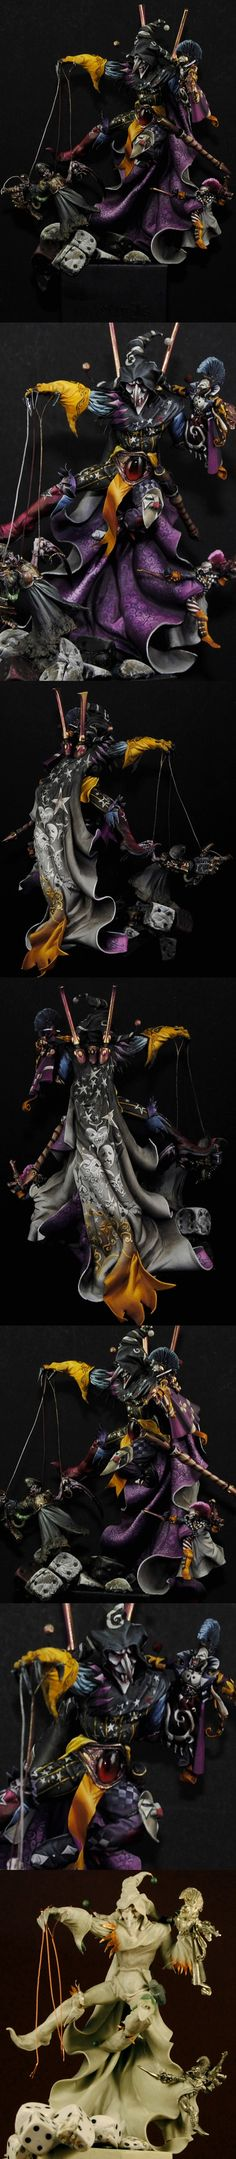 This is a pretty awesome Warhammer 40,000 painting and sculpting job.